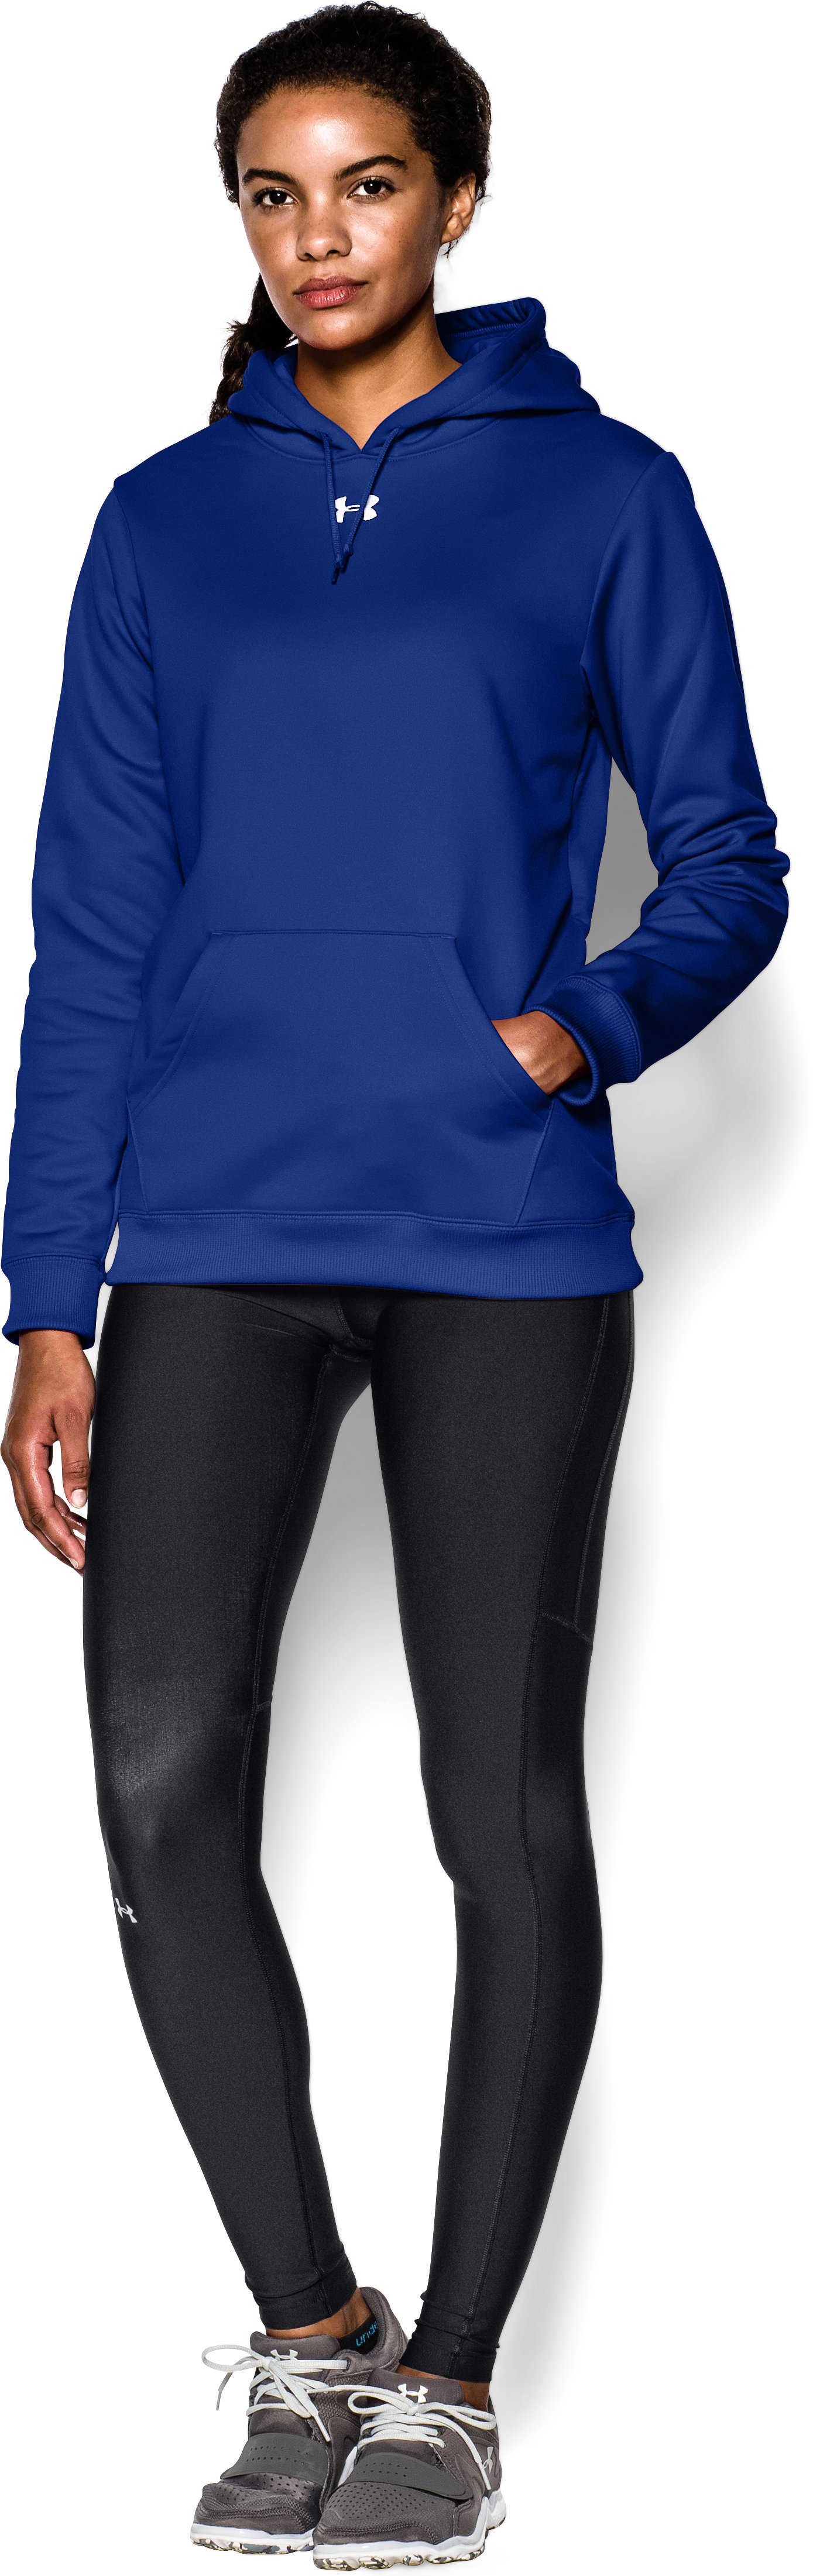 Women's Armour® Fleece Team Hoodie, Royal, zoomed image